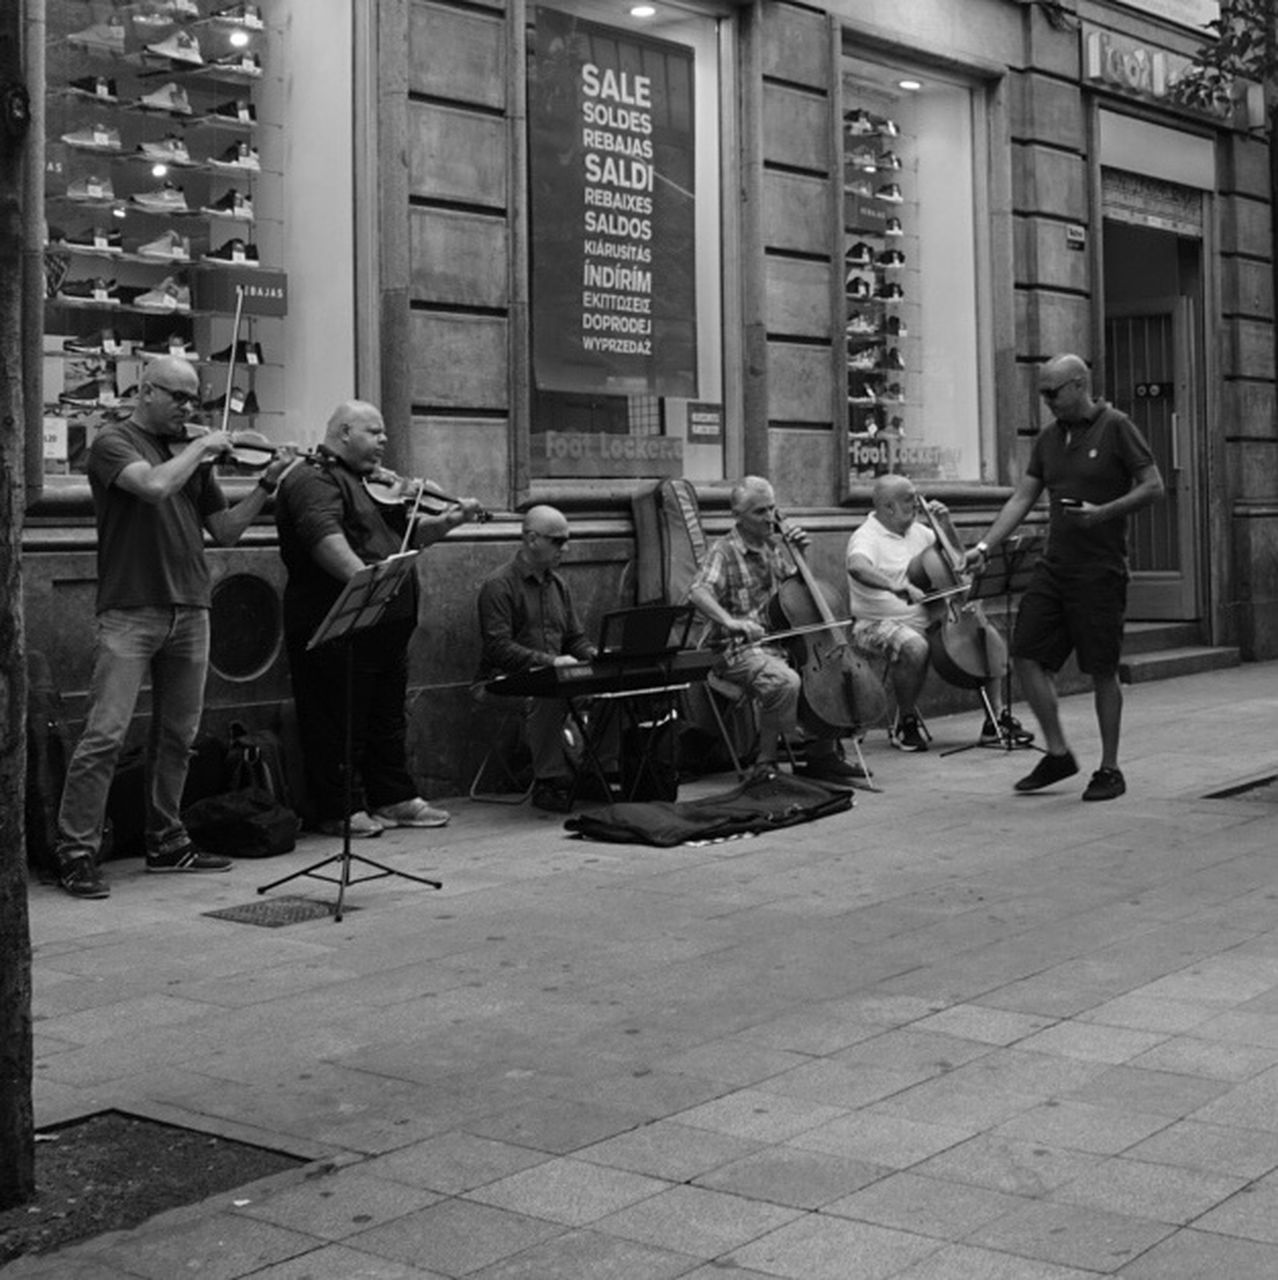 real people, men, street, music, building exterior, full length, built structure, large group of people, musical instrument, musician, architecture, casual clothing, lifestyles, women, outdoors, standing, city, day, guitar, adult, people, adults only